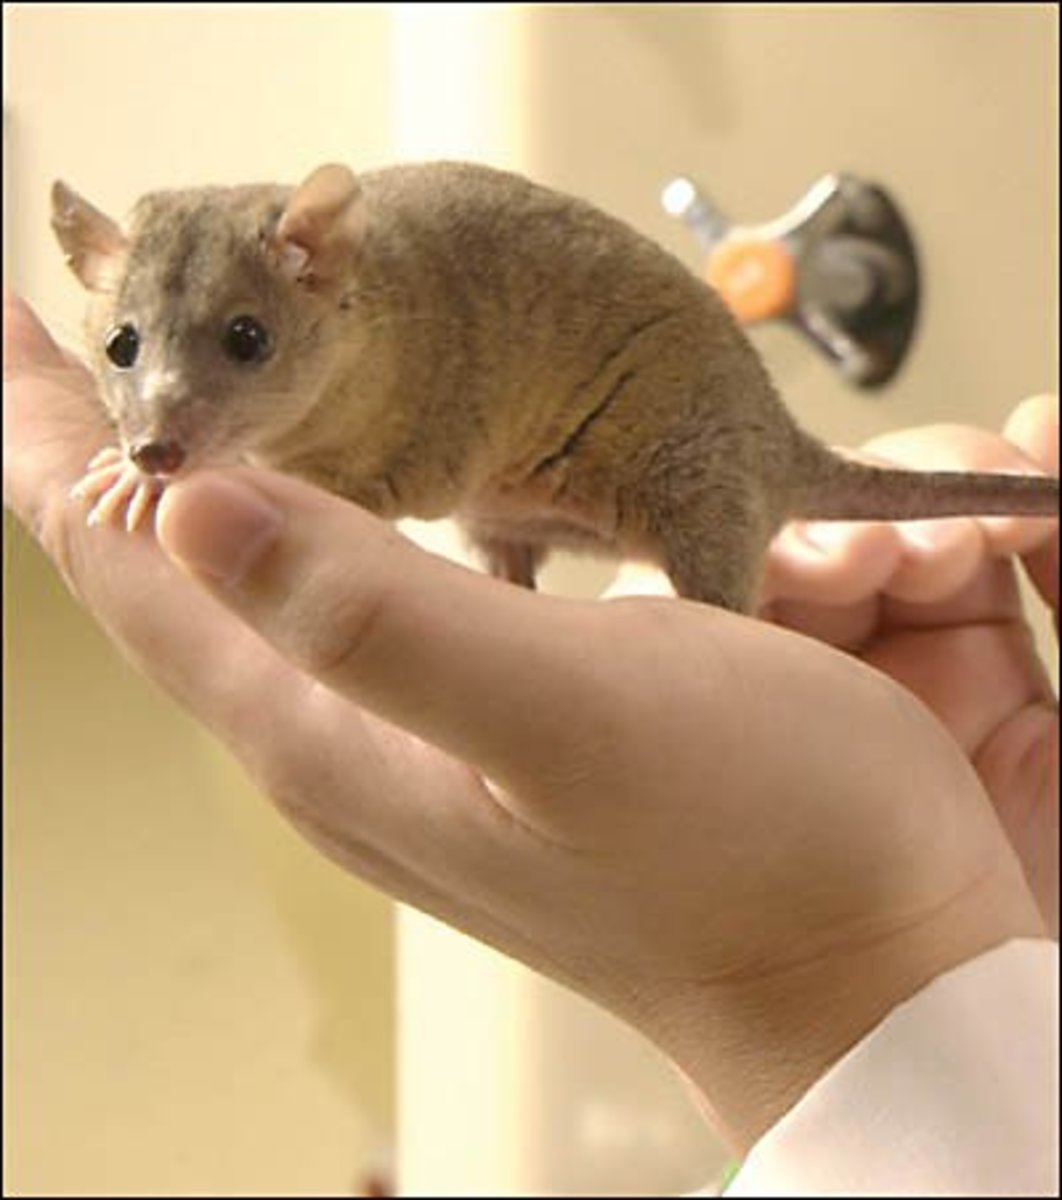 Pygmy possums are marsupials - despite looking mouse-like they carry their babies at first in a pouch and then on their backs. They can make docile pets.